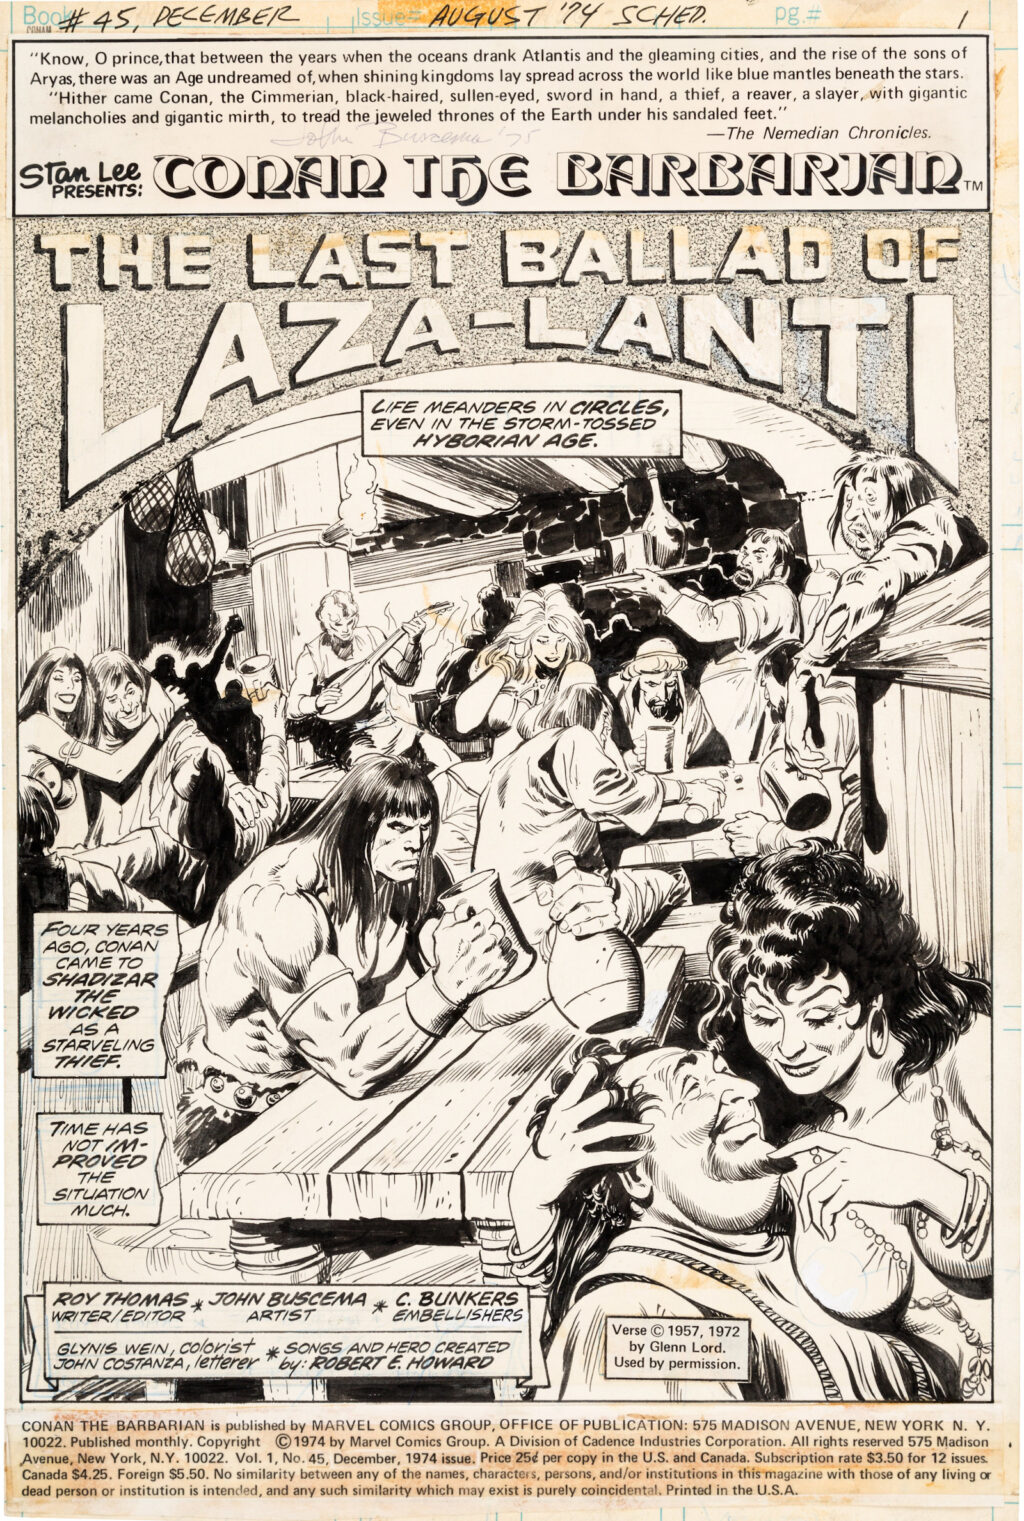 Conan the Barbarian issue 45 Page 1 by John Buscema and Crusty Bunkers